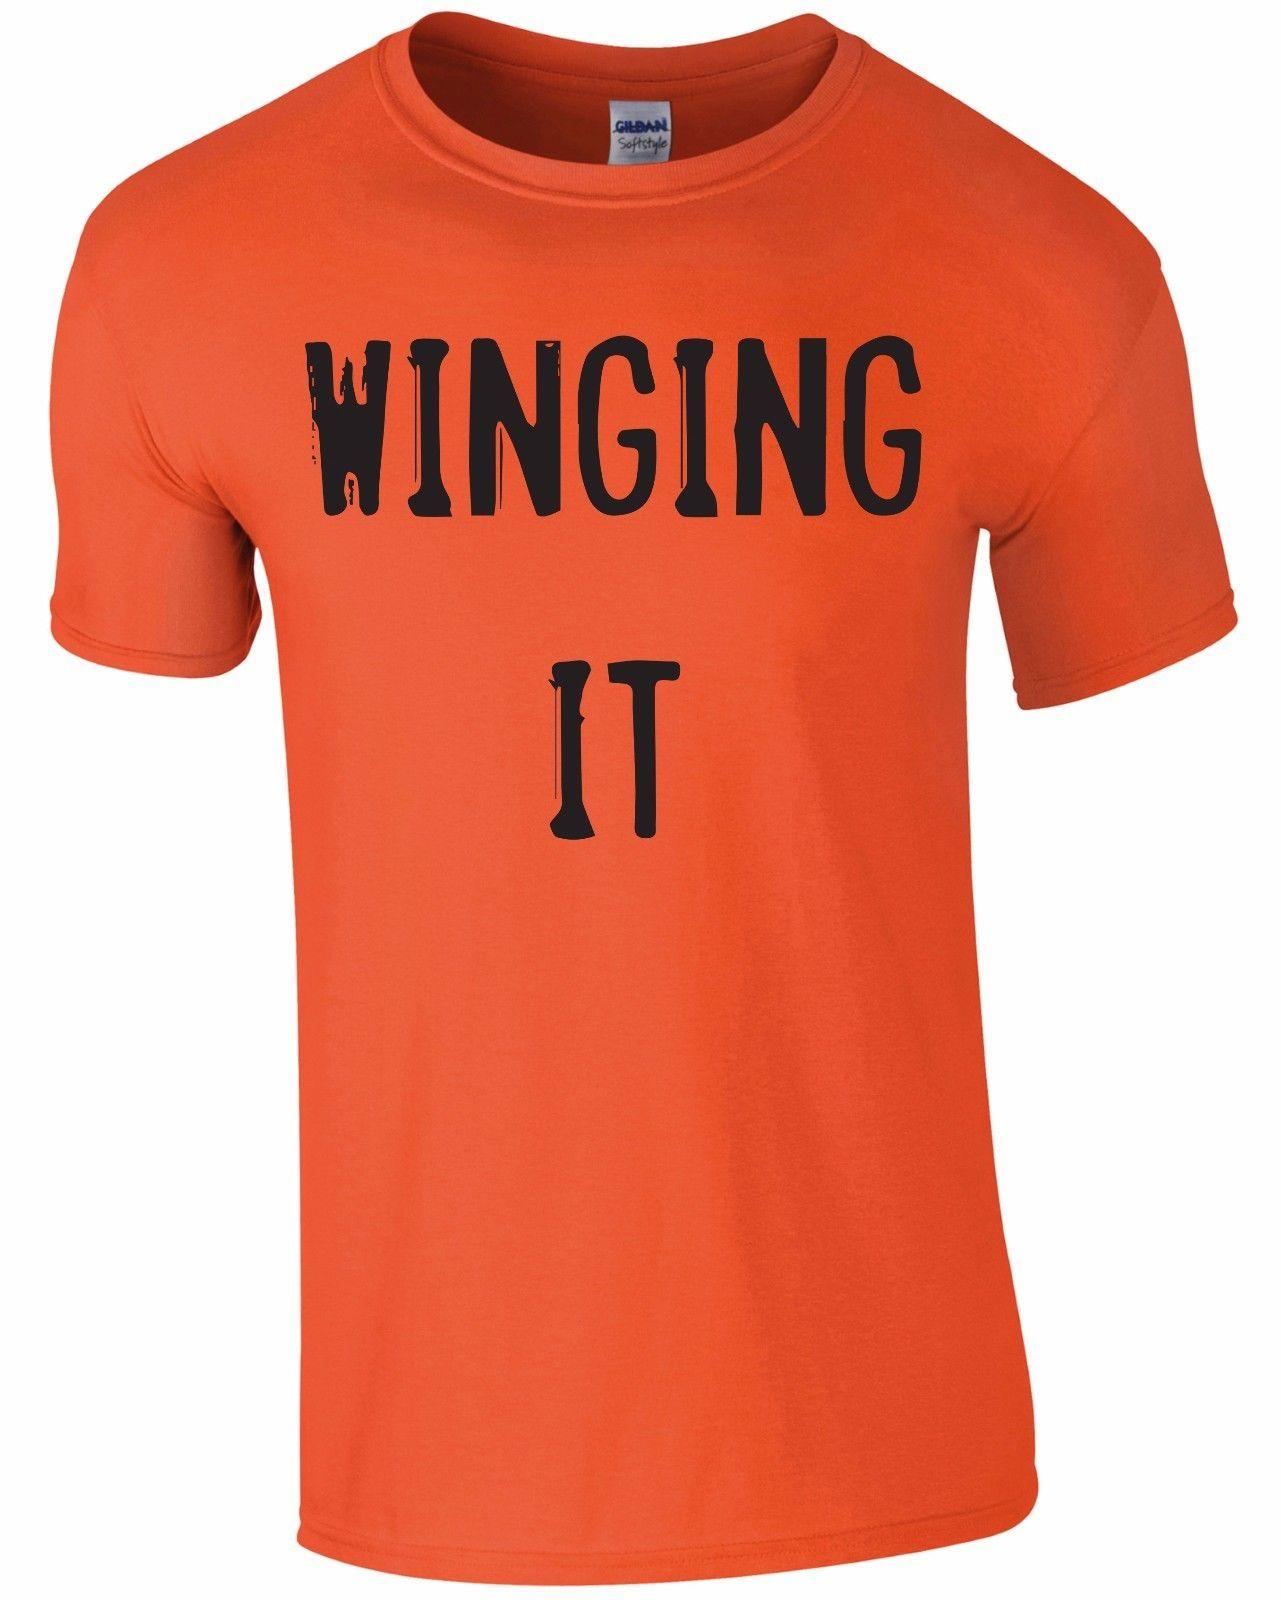 78dba6cc Winging It Mens Tee T ShirtFunny Unisex Casual Gift Shirt Online Cartoon T  Shirts From Free_will_shirts, $12.96| DHgate.Com